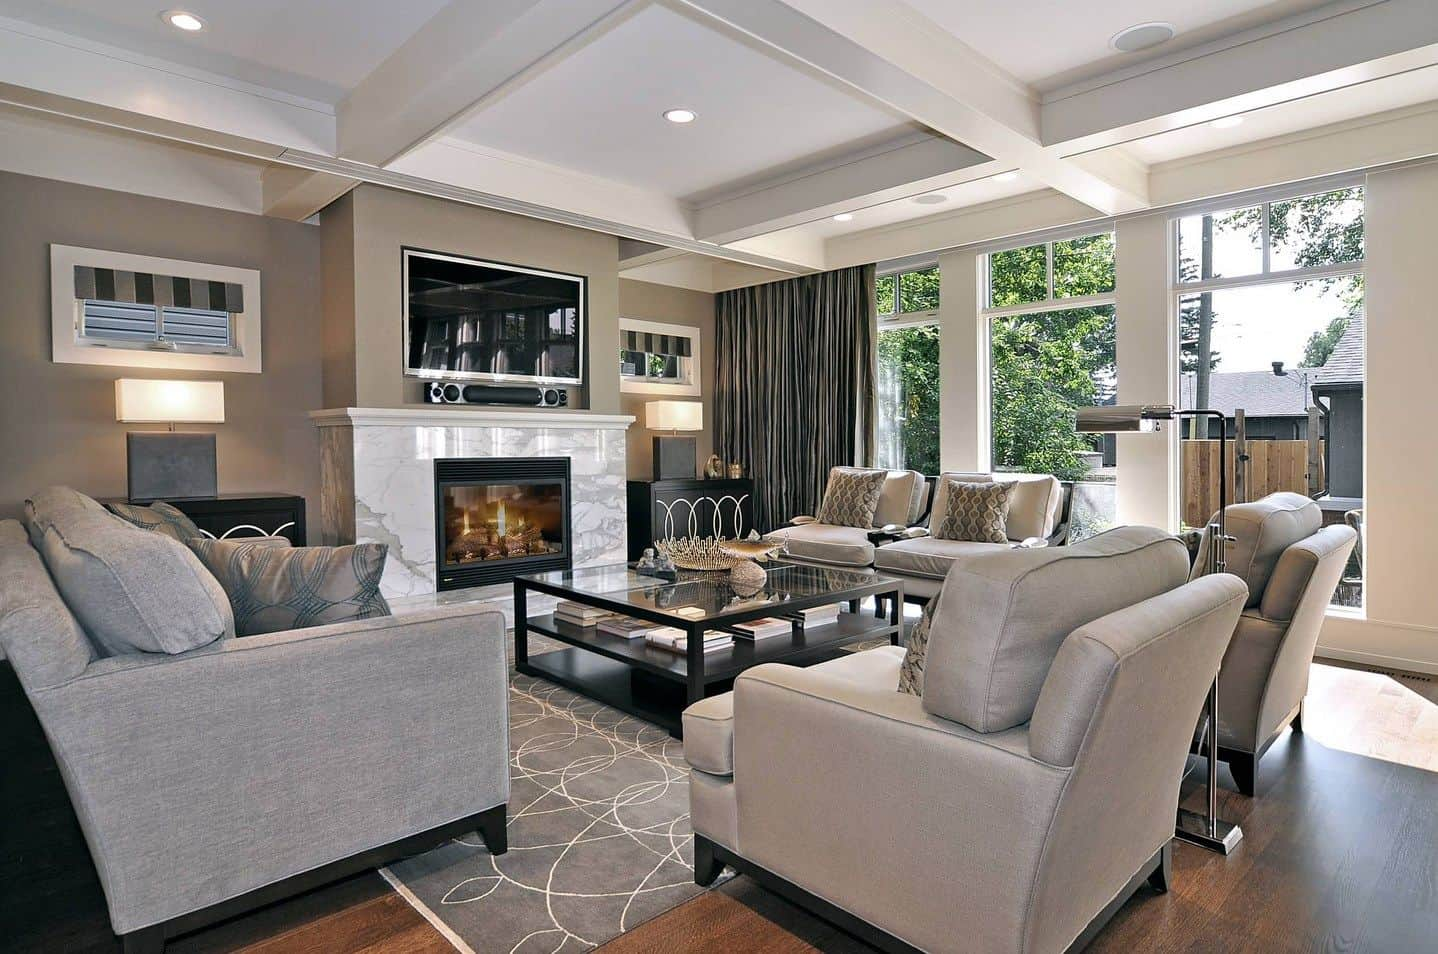 Gray living room with coffered ceiling and hardwood flooring topped by a patterned rug. It includes dark wood tables with modern table lamps along with a fireplace and television in the middle.